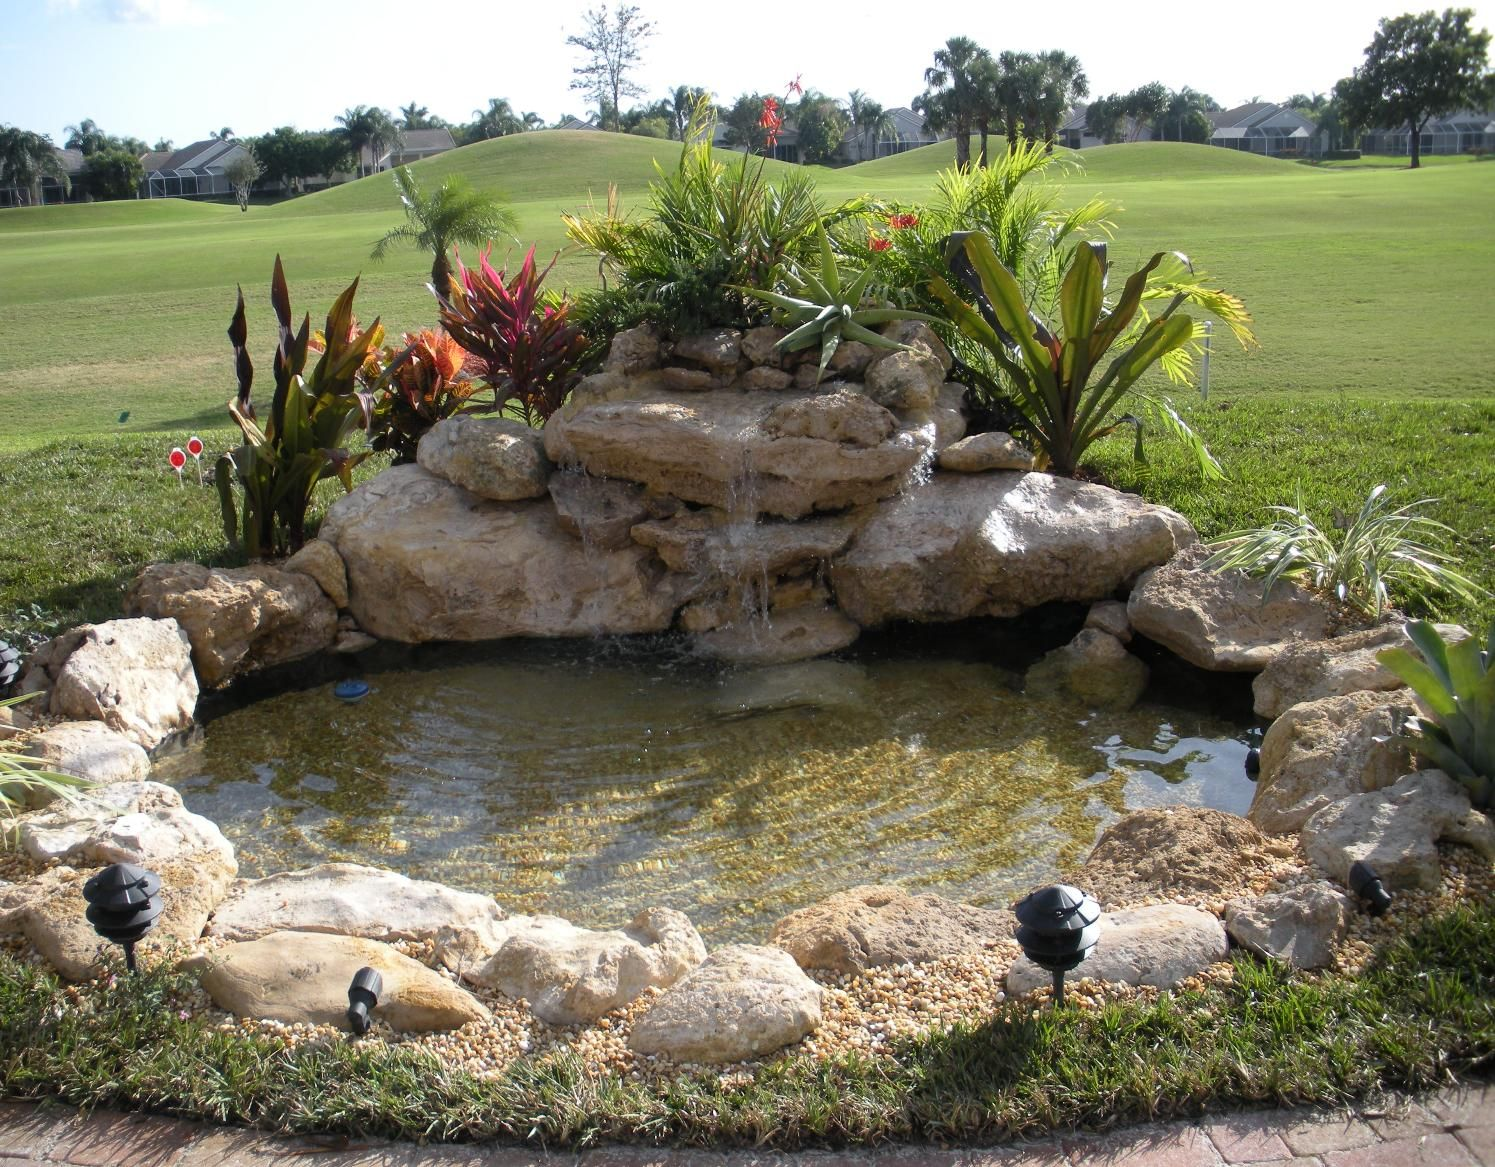 Landscaping waterfalls and fish ponds ways to maintain for Garden with pond